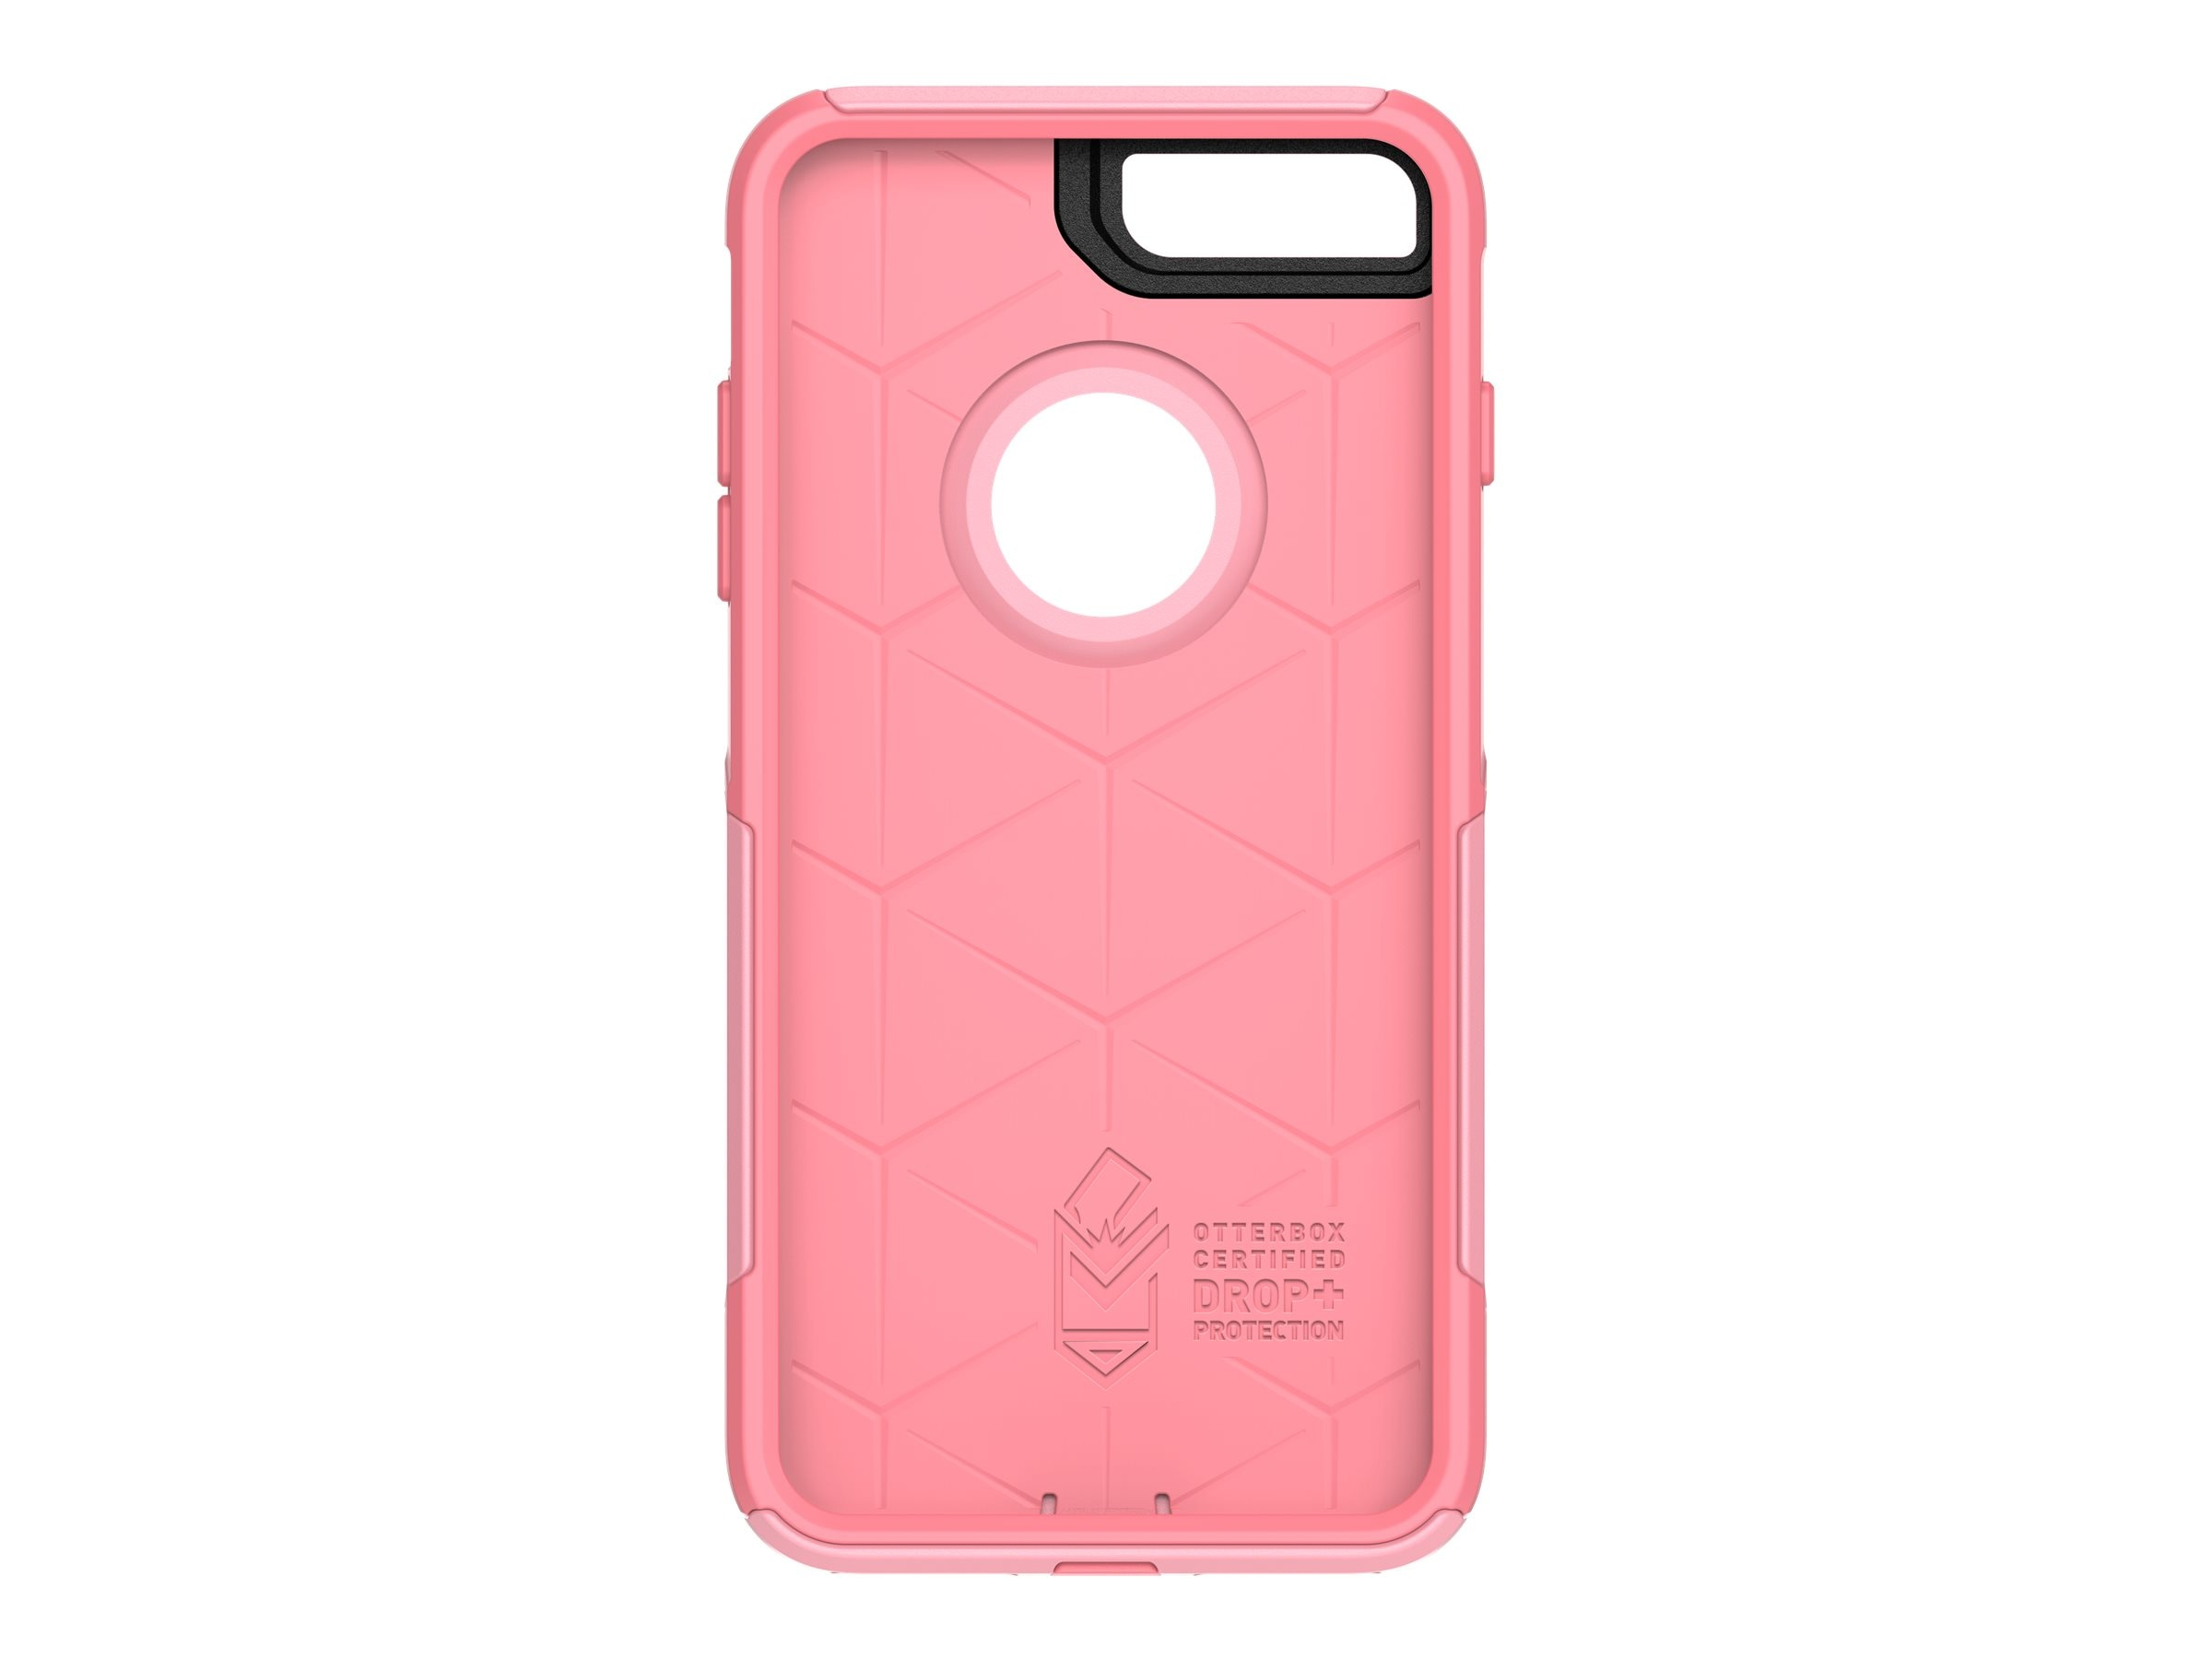 OtterBox Commuter Case for iPhone 7 Plus, Rosemarine